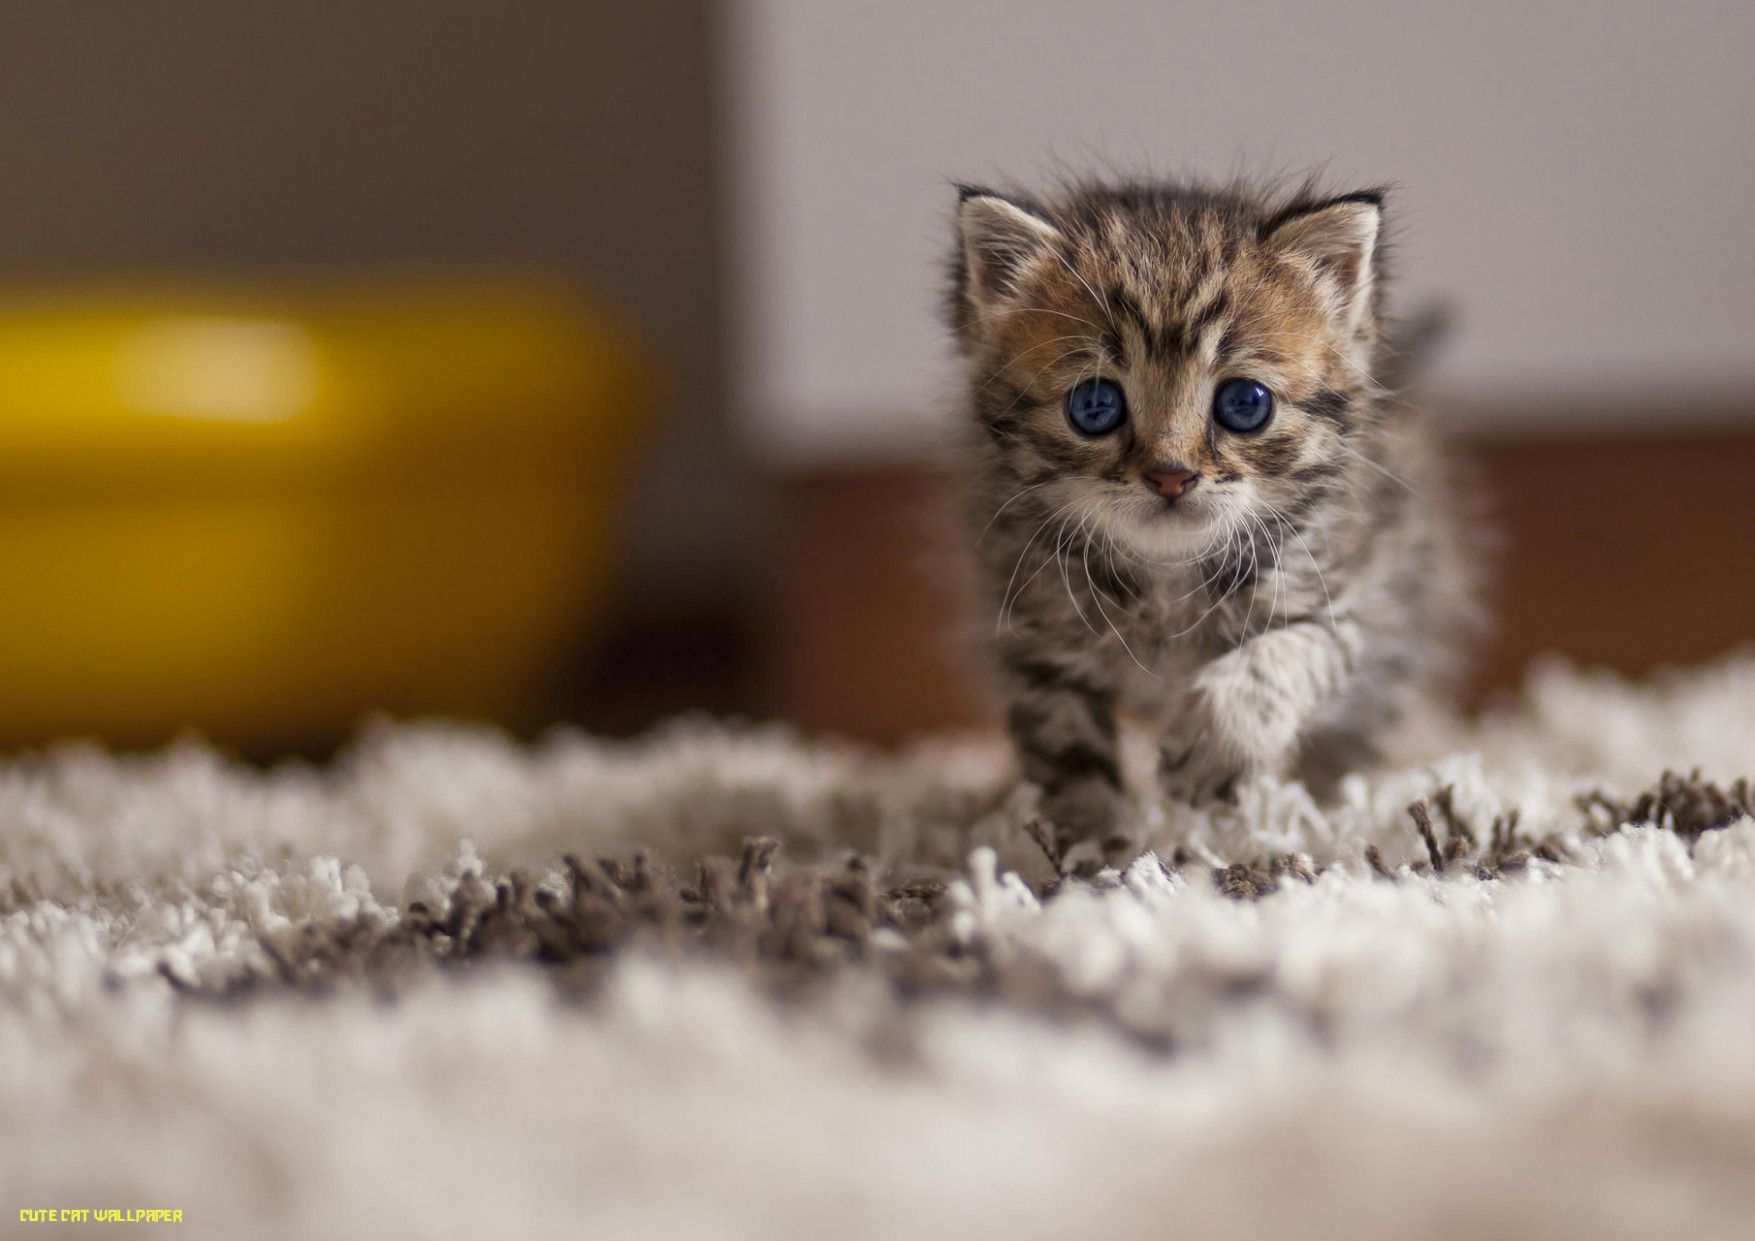 Five Things You Didnt Know About Cute Cat Wallpaper Cute Cat Wallpaper Https Ift Tt 3dmjfgy Cat Wallpaper Cute Cat Wallpaper Cute Cats